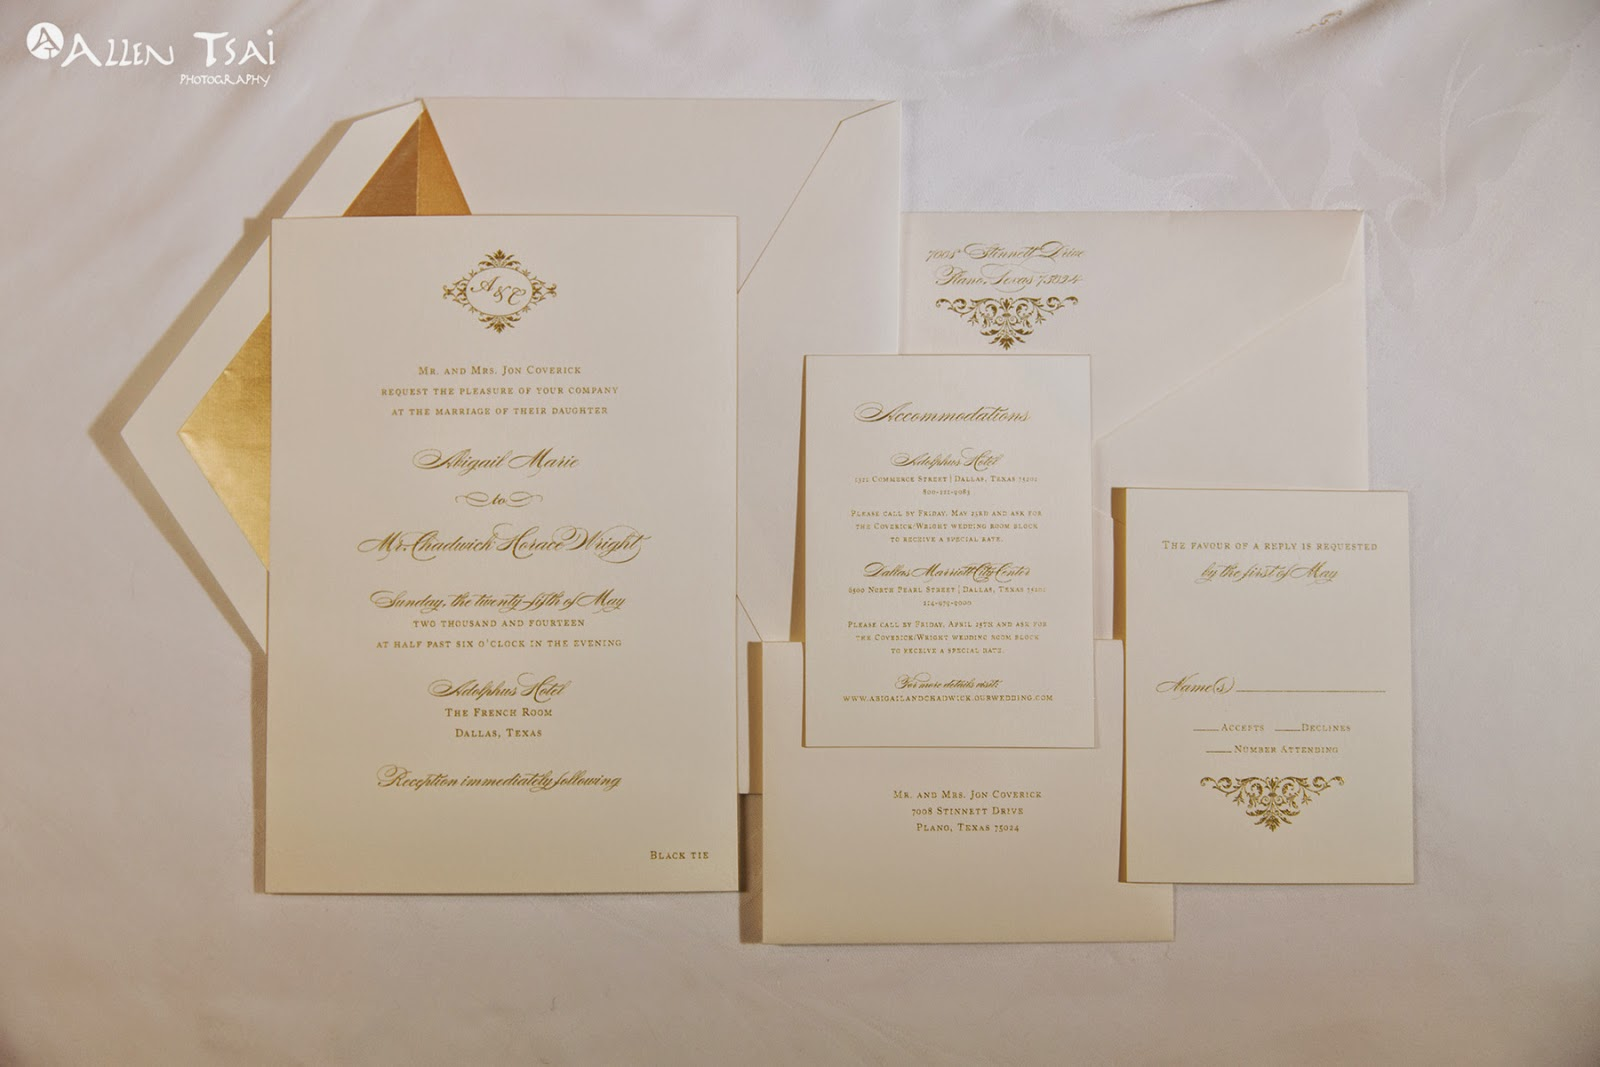 Branding Your Wedding with Logos, Monograms and Initials | StarDust ...